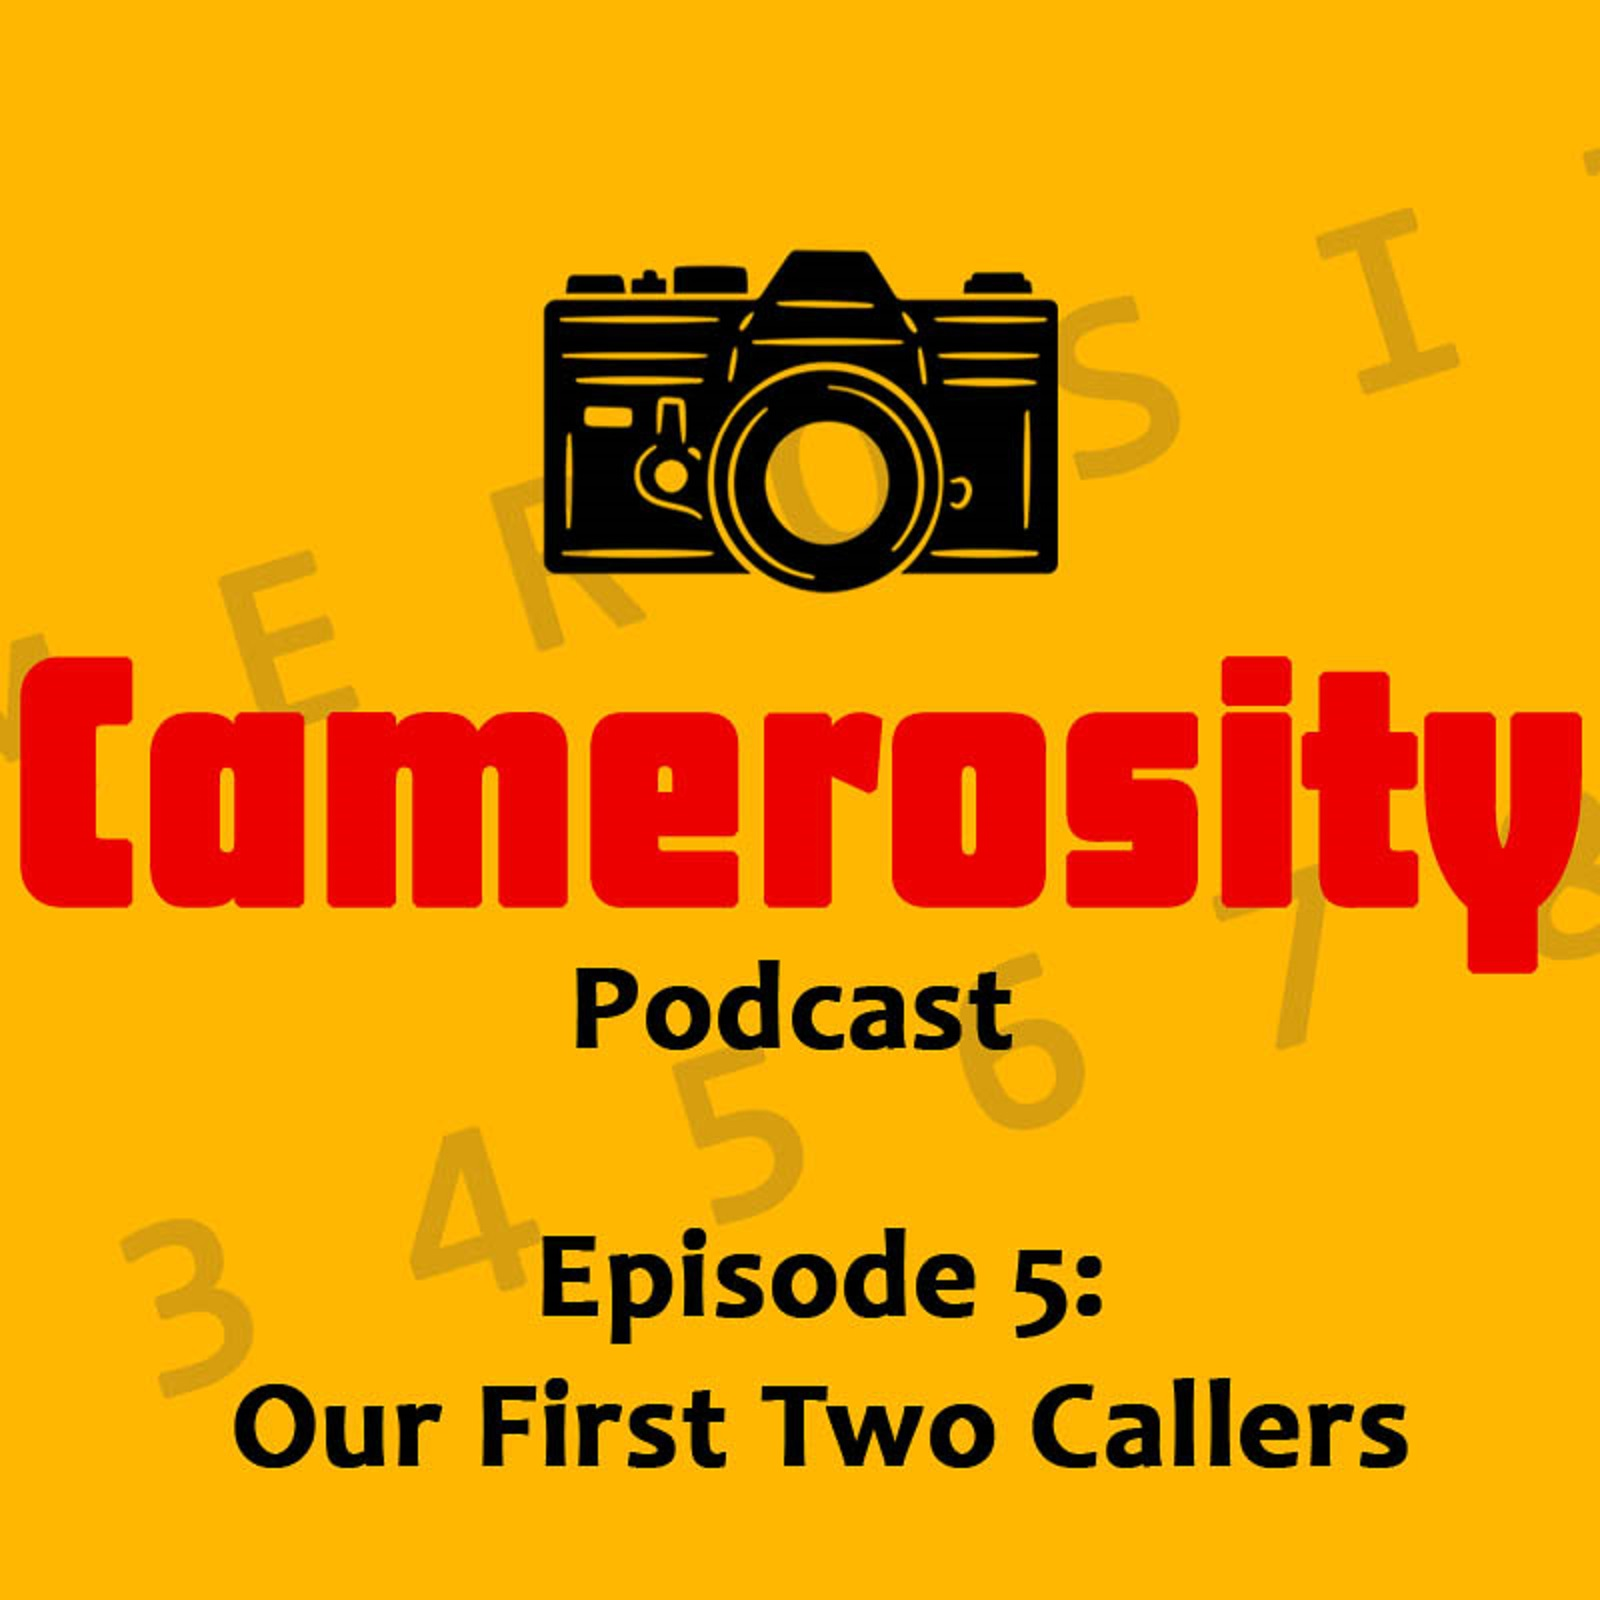 Episode 5: Our First Two Callers